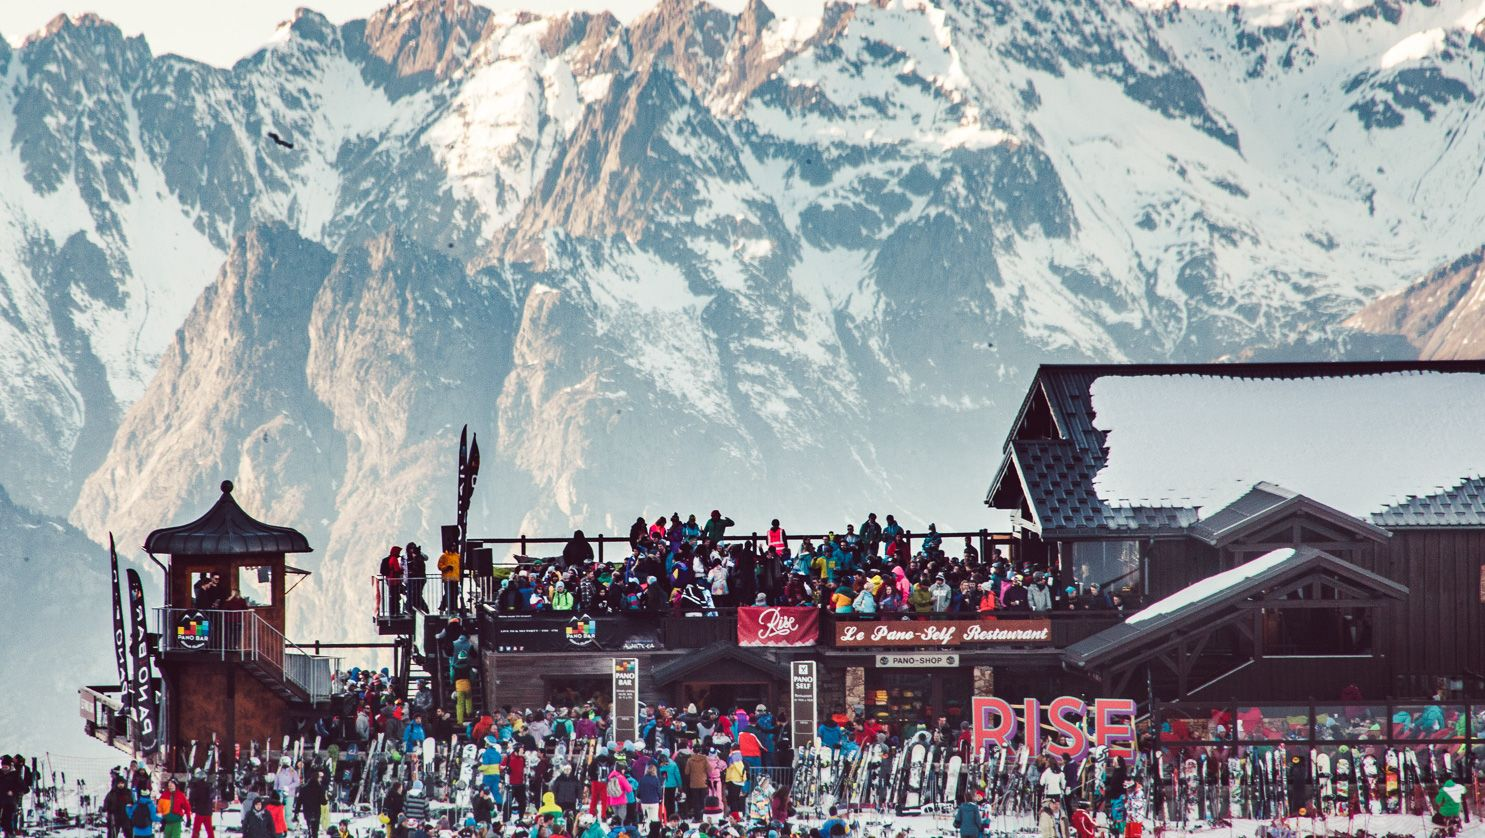 people partying at rise festival in les deux alpes